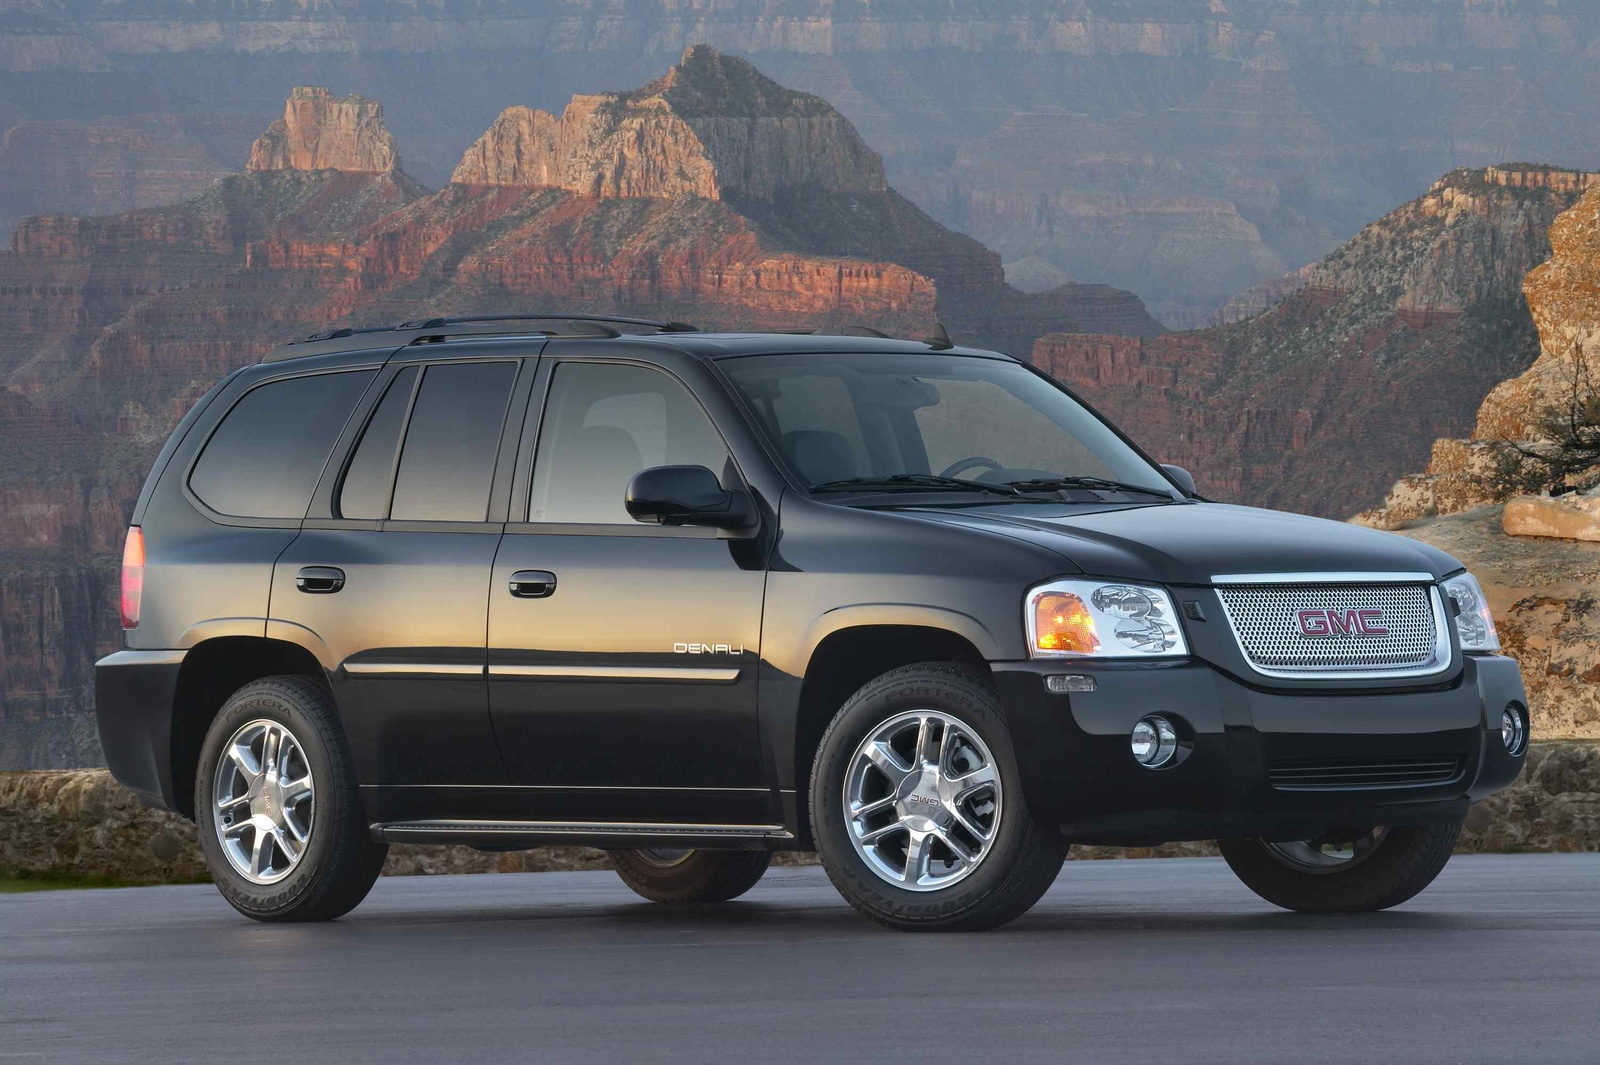 2009 Gmc Envoy Review Cargurus